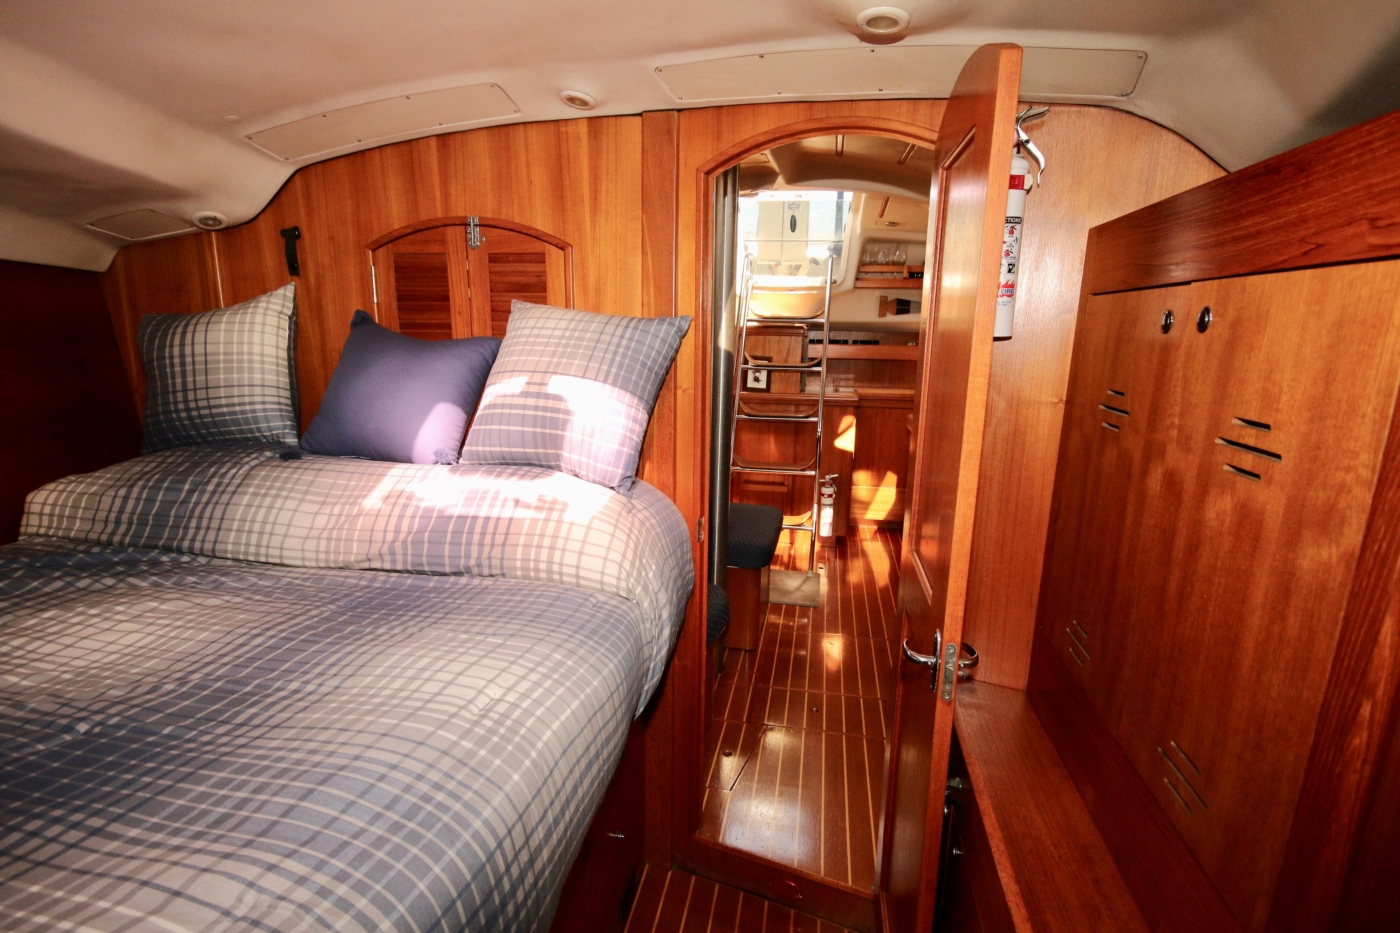 2004 Hunter Passage 420, Guest cabin looking aft to salon